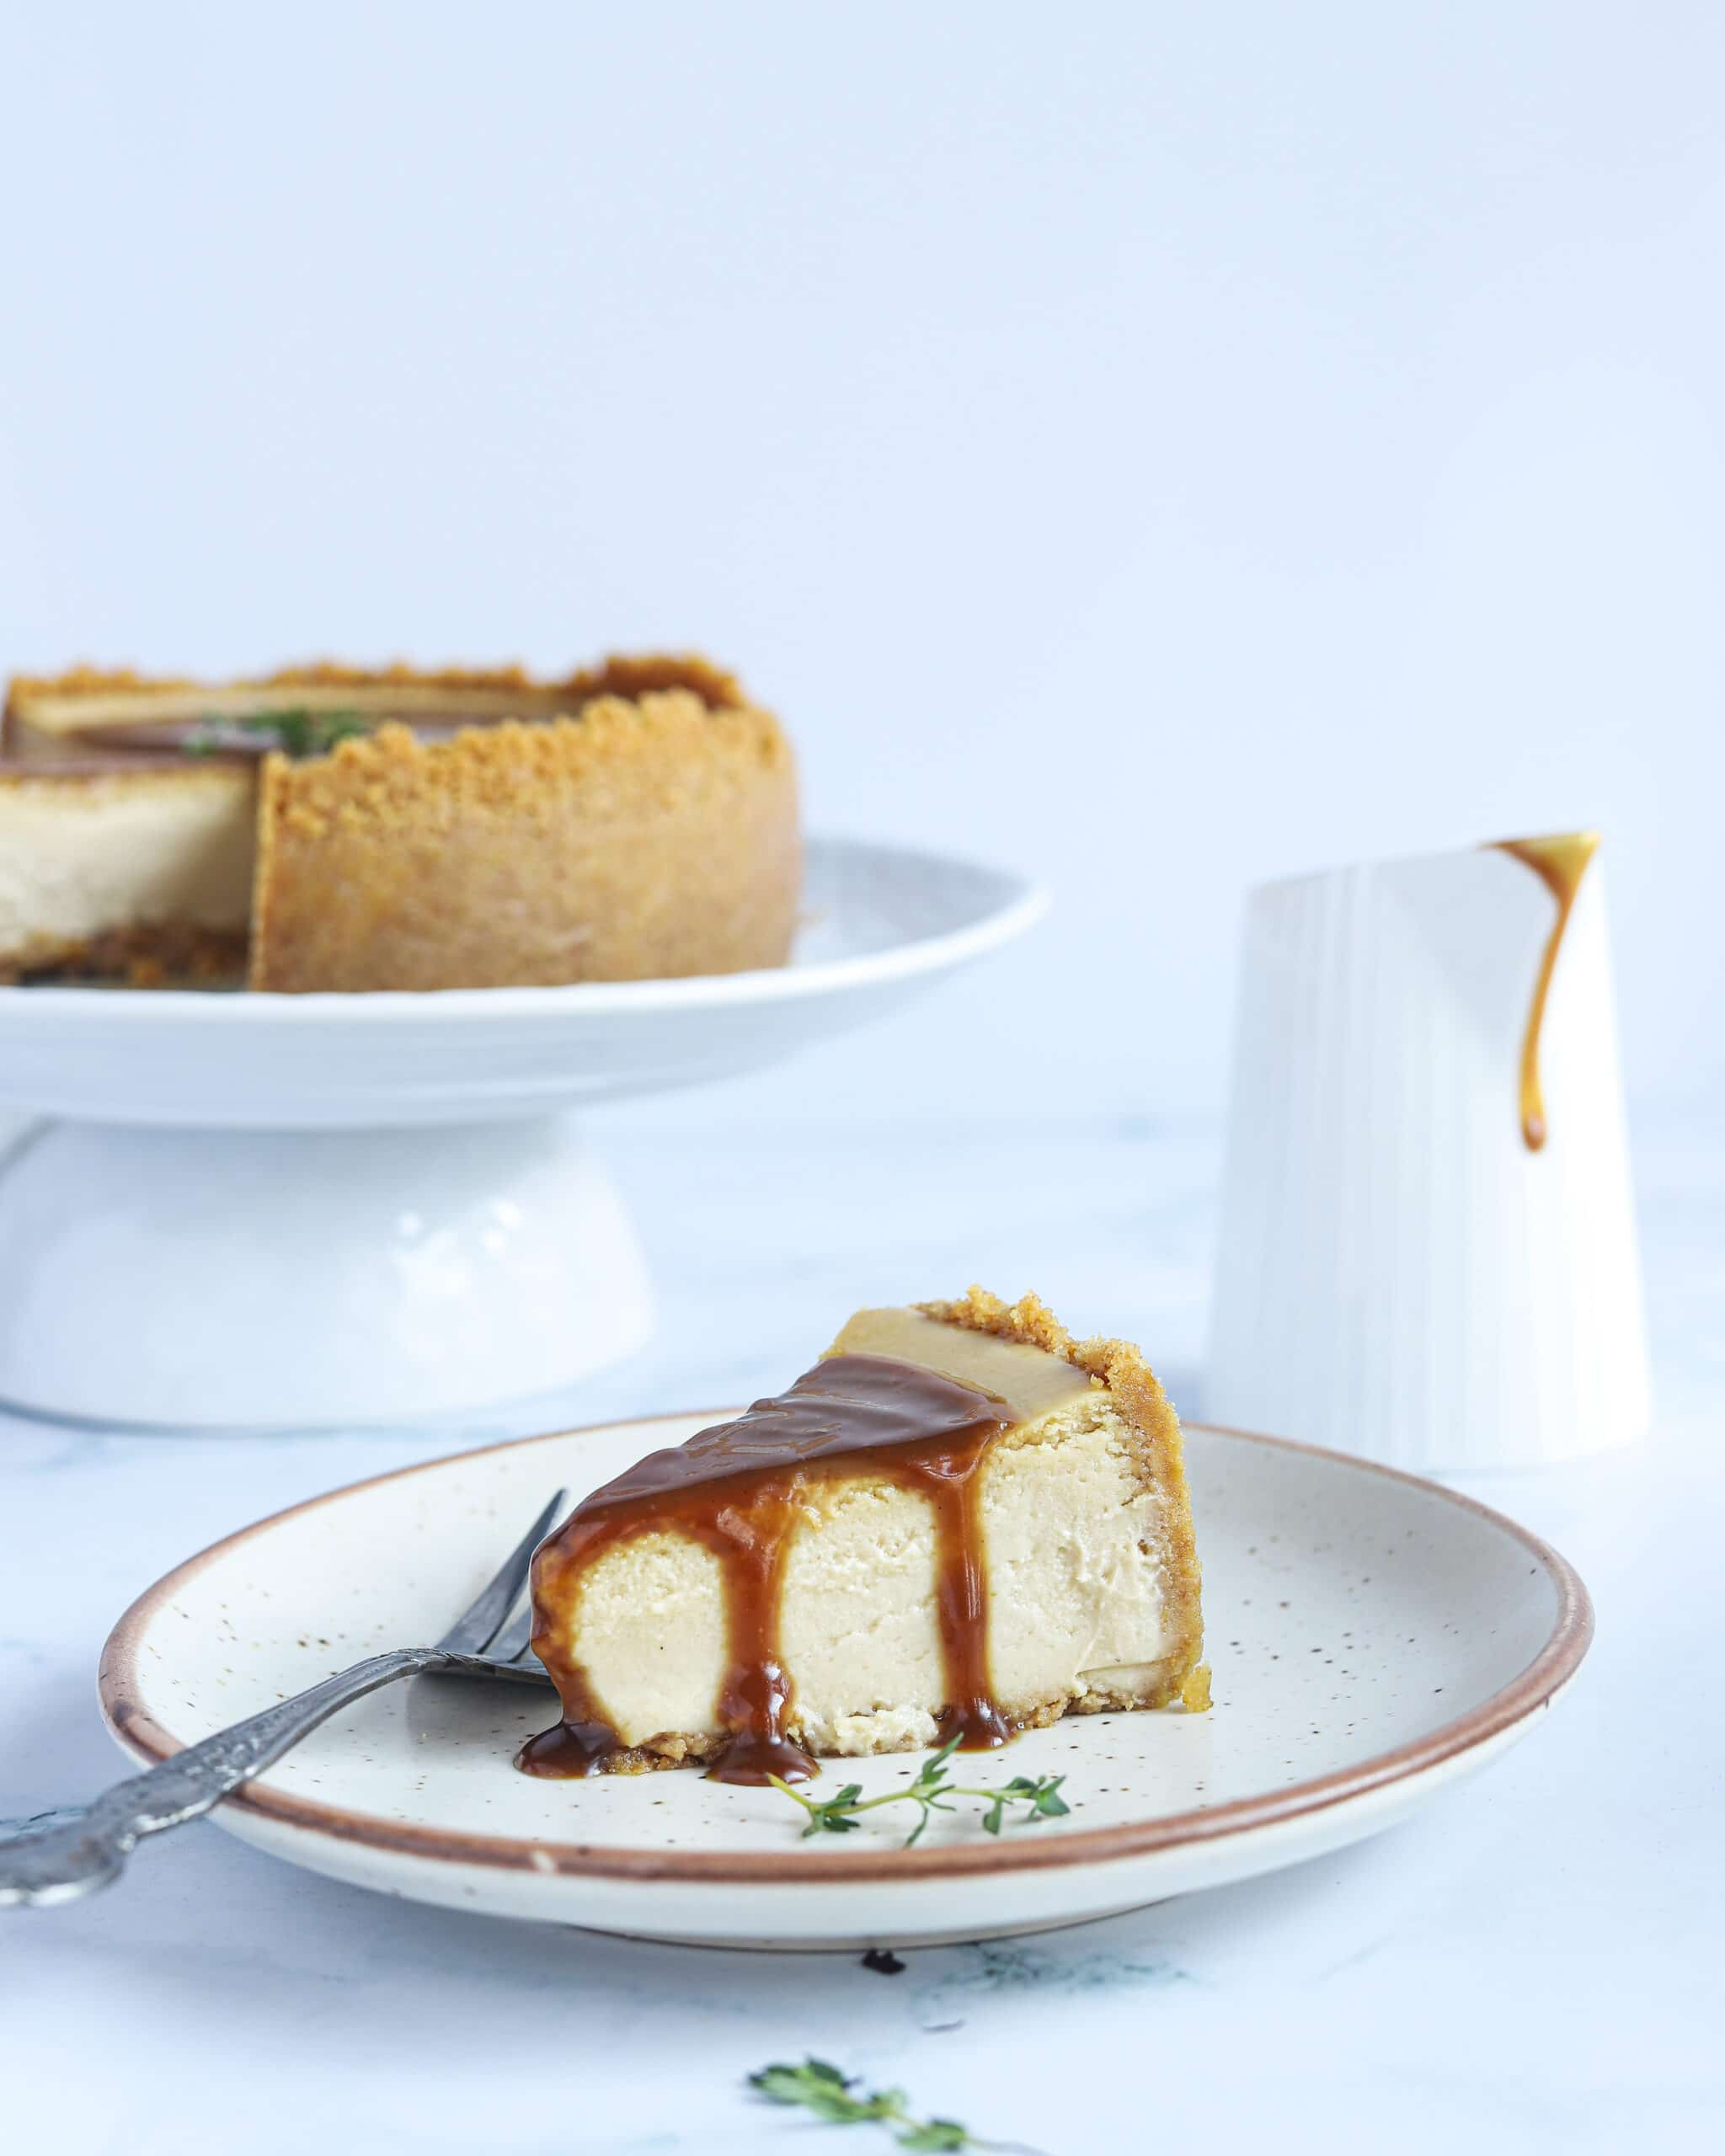 Earl Grey Cheesecake Plated. This Earl Grey Cheesecake is a holiday favorite dessert, with a creamy texture, and delicate flavor. It has an Earl Grey tea-infused cheesecake filling and a Biscoff buttery, crisp crust. This tea-infused cheesecake is the perfect dessert for any occasion.